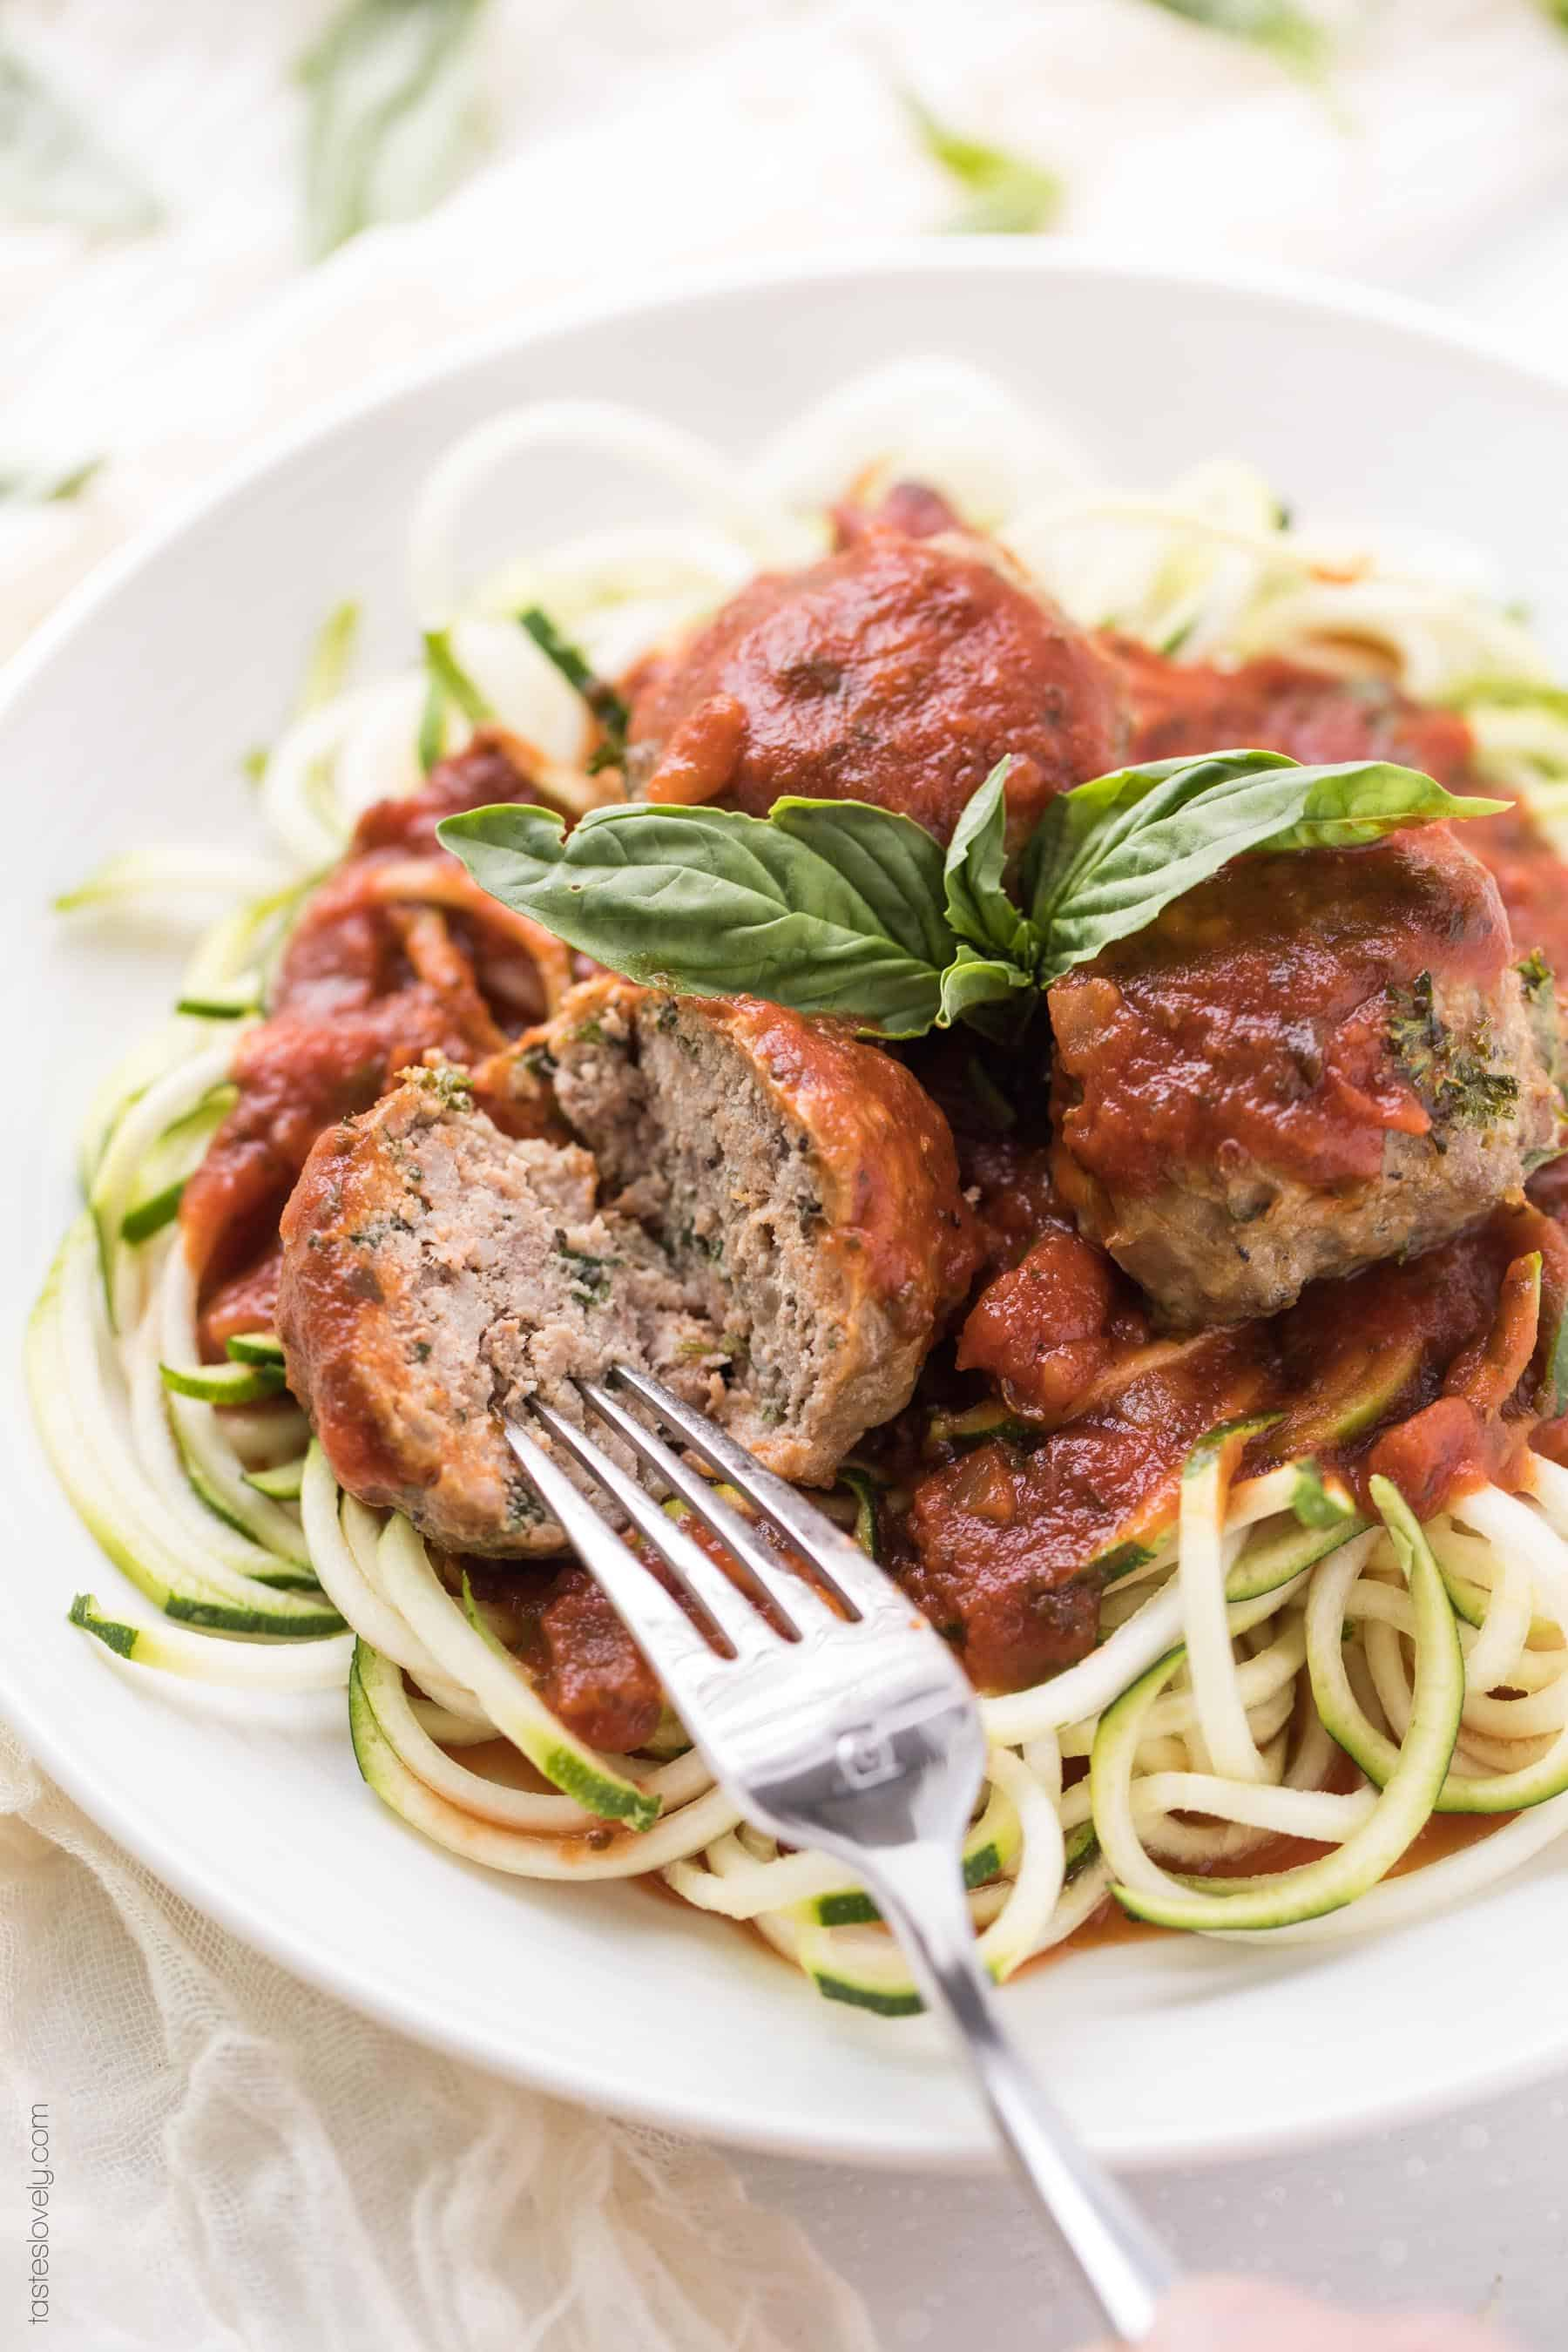 meatballs on plate with zucchini noodles